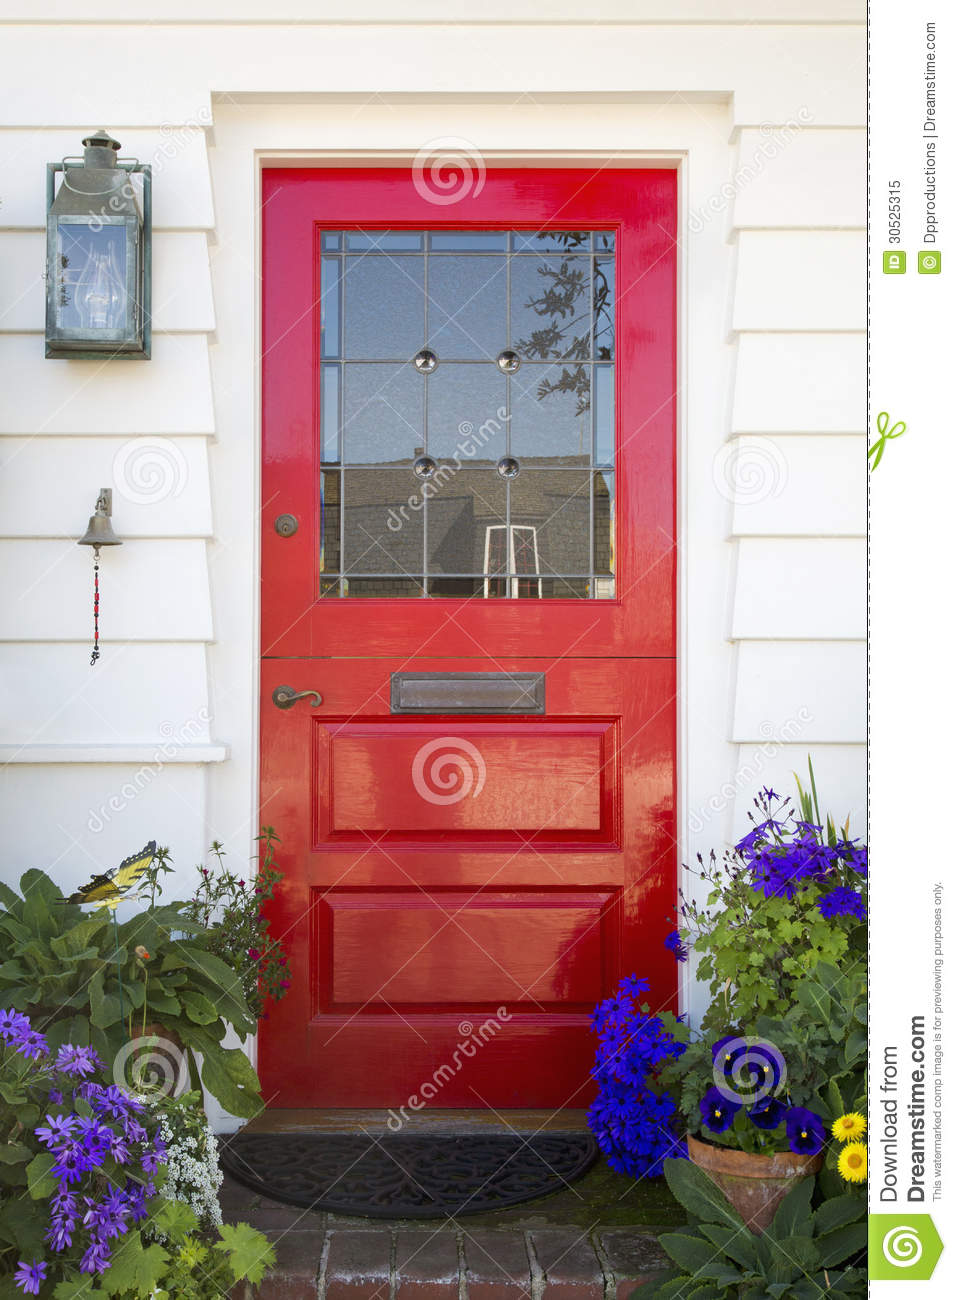 Red Front Door Of An Upscale Home Royalty Free Stock Photo - Image: 30525315